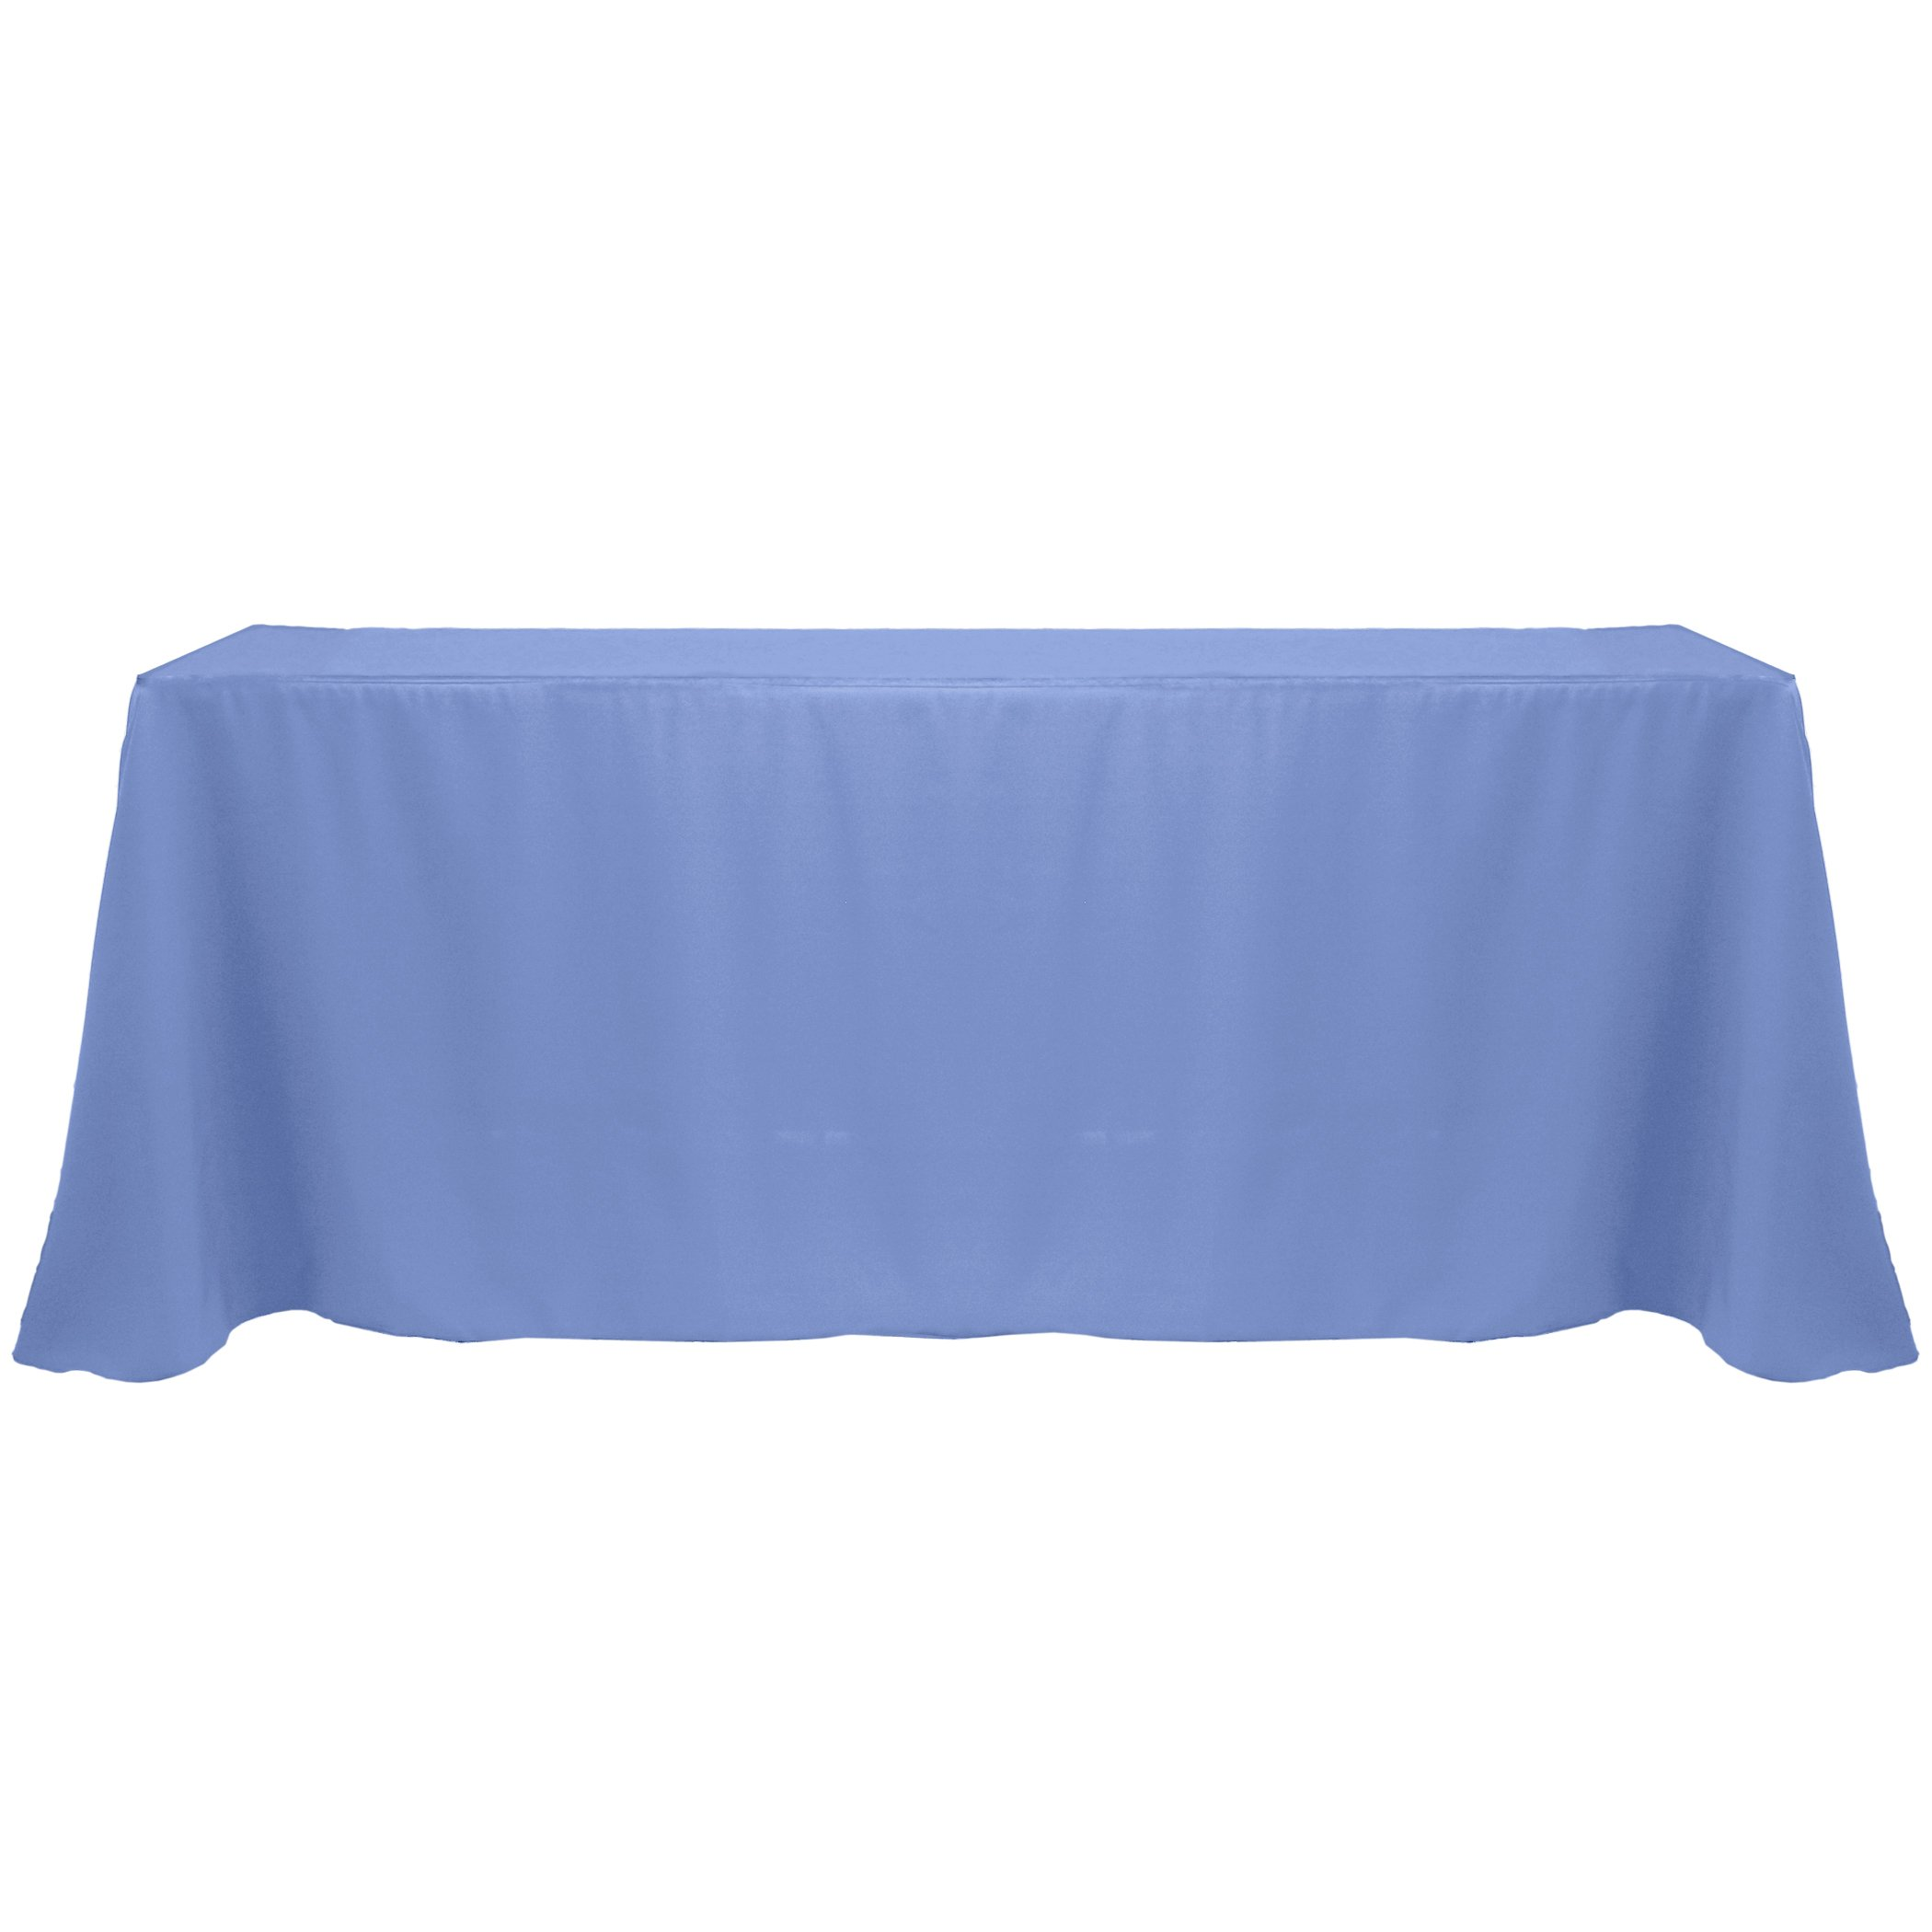 Ultimate Textile (3 Pack) 90 x 156-Inch Rectangular Polyester Linen Tablecloth with Rounded Corners - for Wedding, Restaurant or Banquet use, Periwinkle Blue